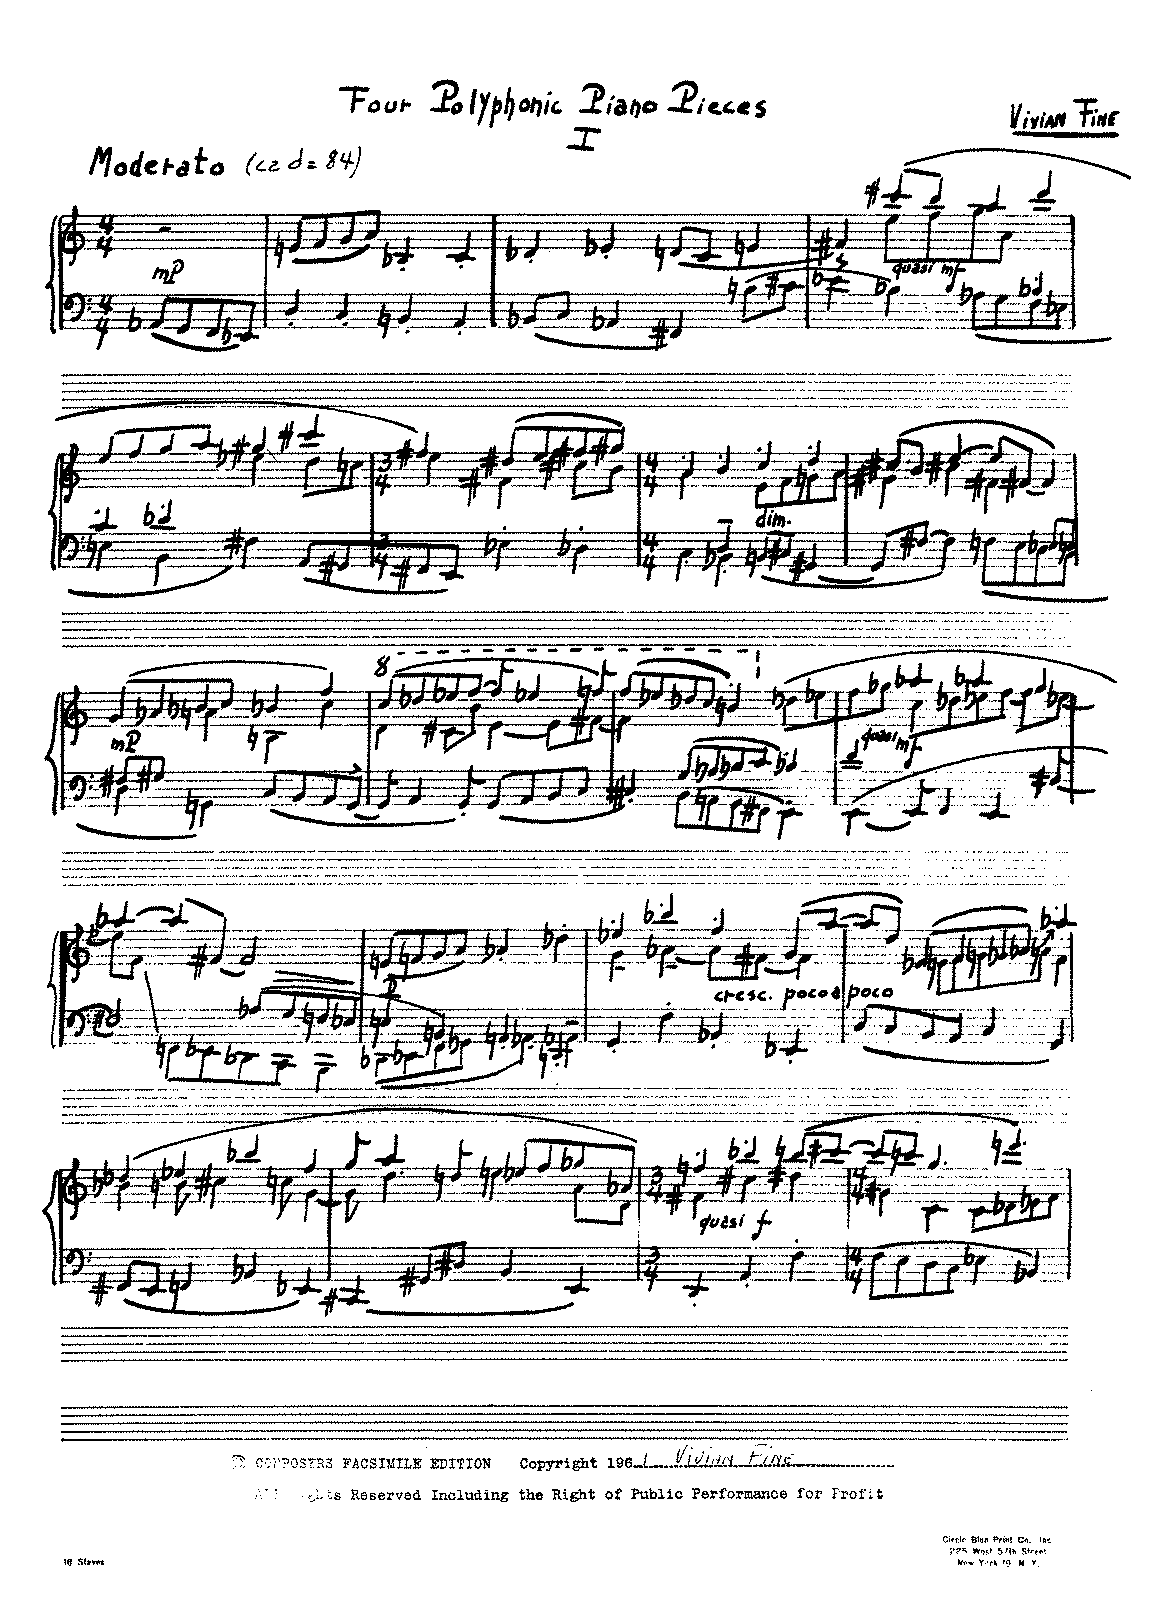 PMLP397406-Four Polyphonic Piano Pieces.pdf